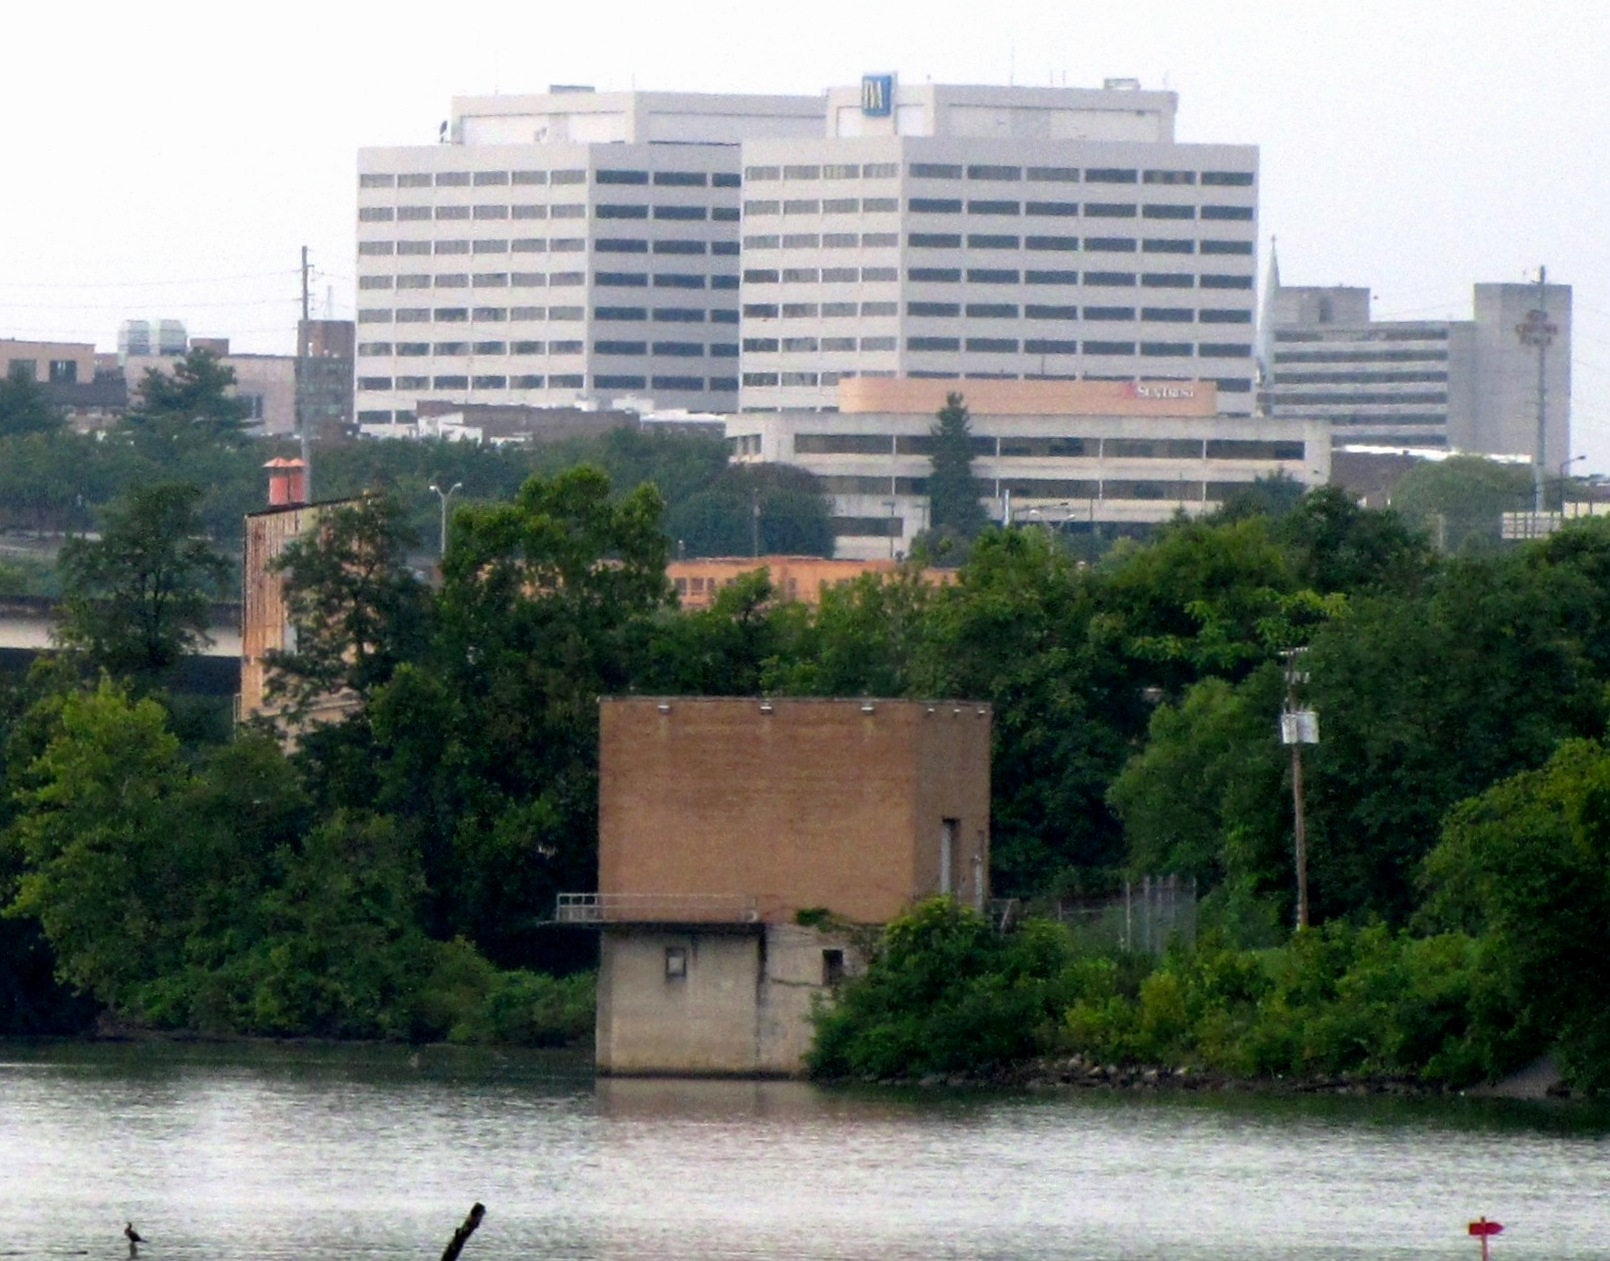 The TVA Towers, viewed from the Island Home Airport in Knoxville, TN, USA. The Tennessee River is in the foreground.